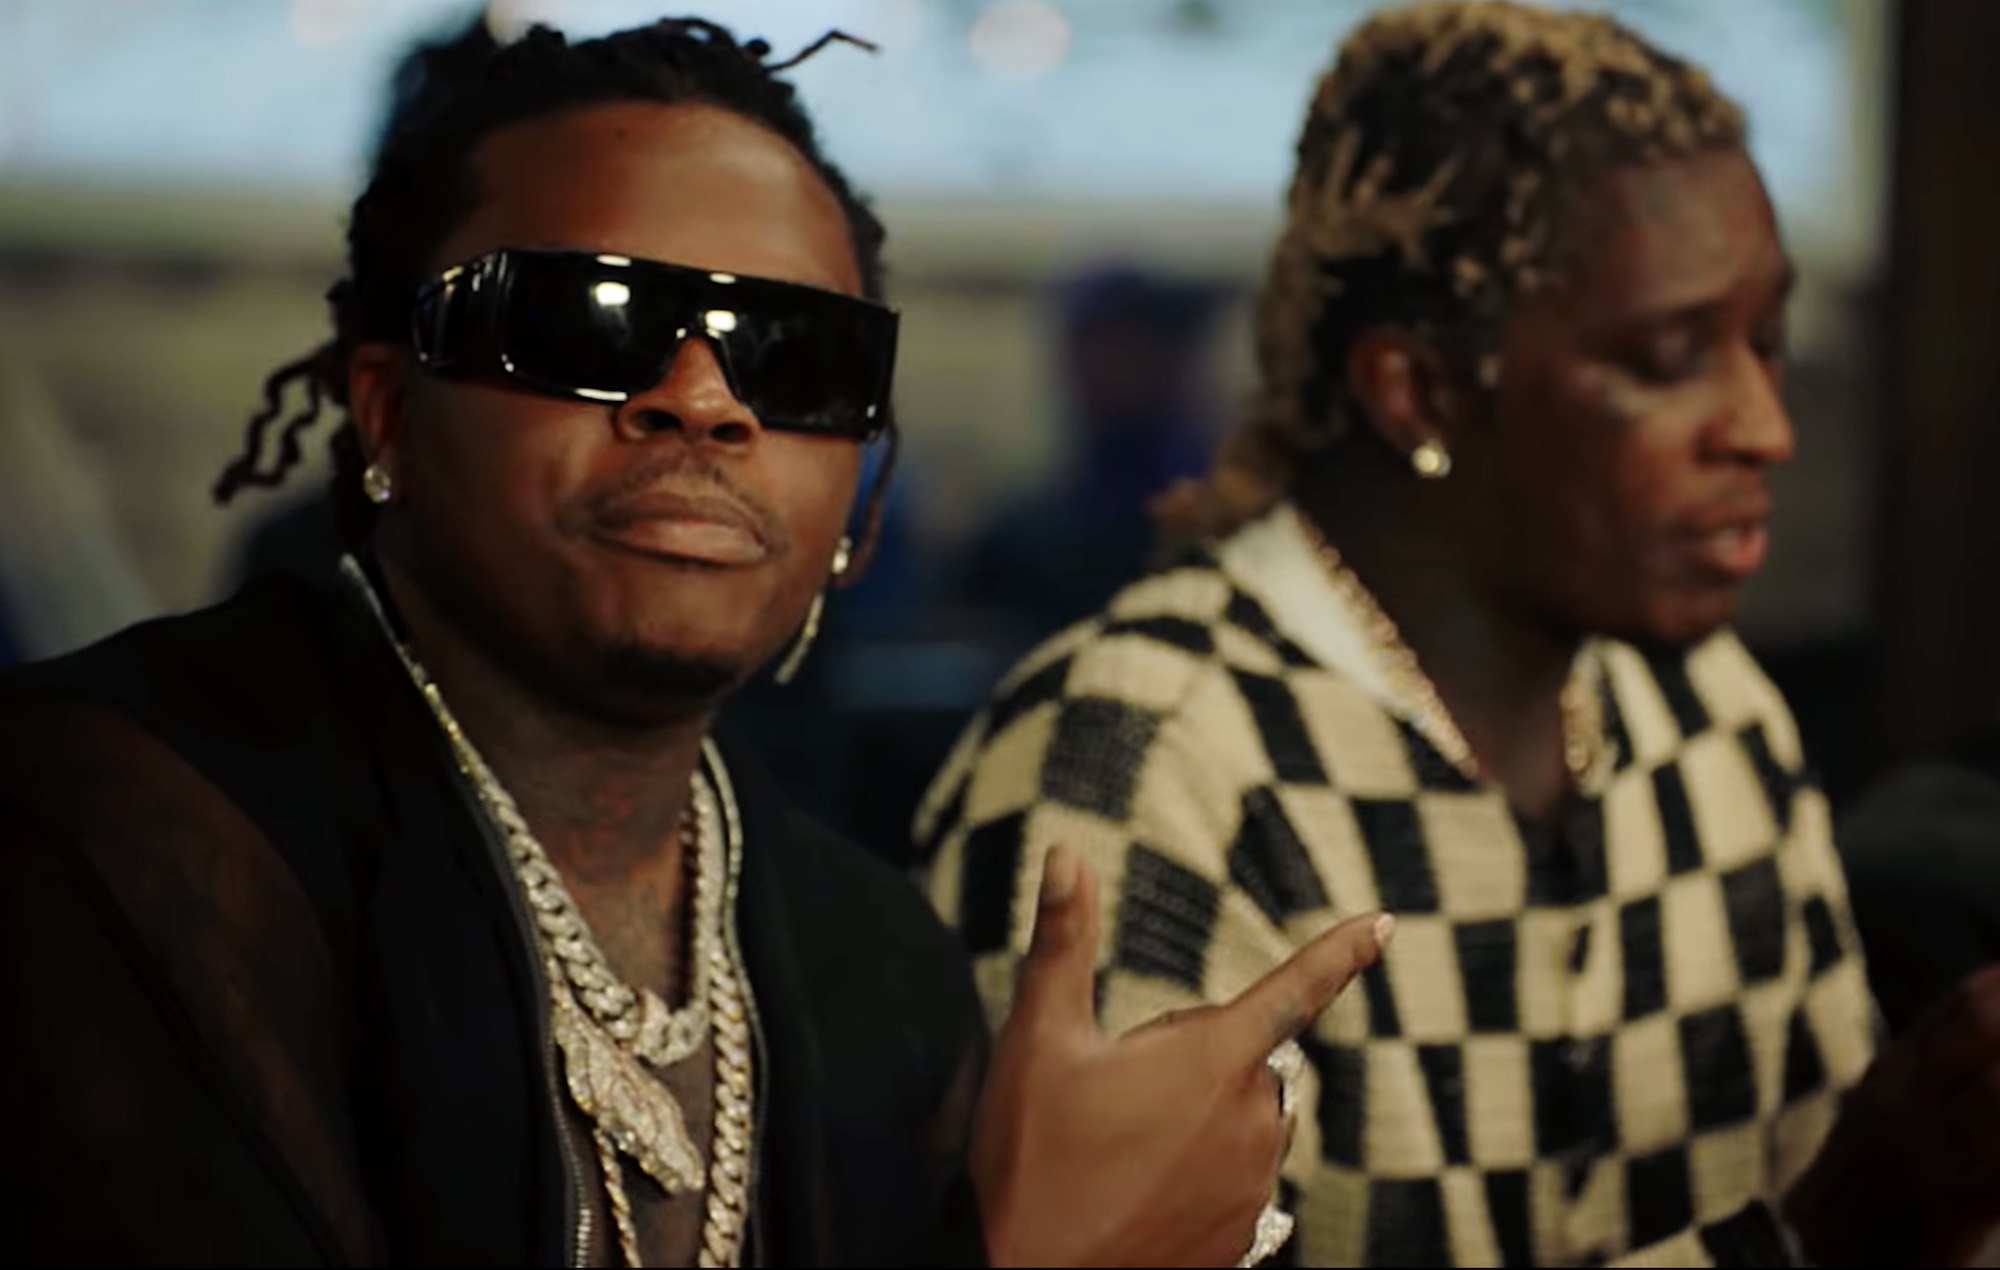 Watch Young Thug and Gunna pay bail for prison inmates in new 'Pay The Fine' video